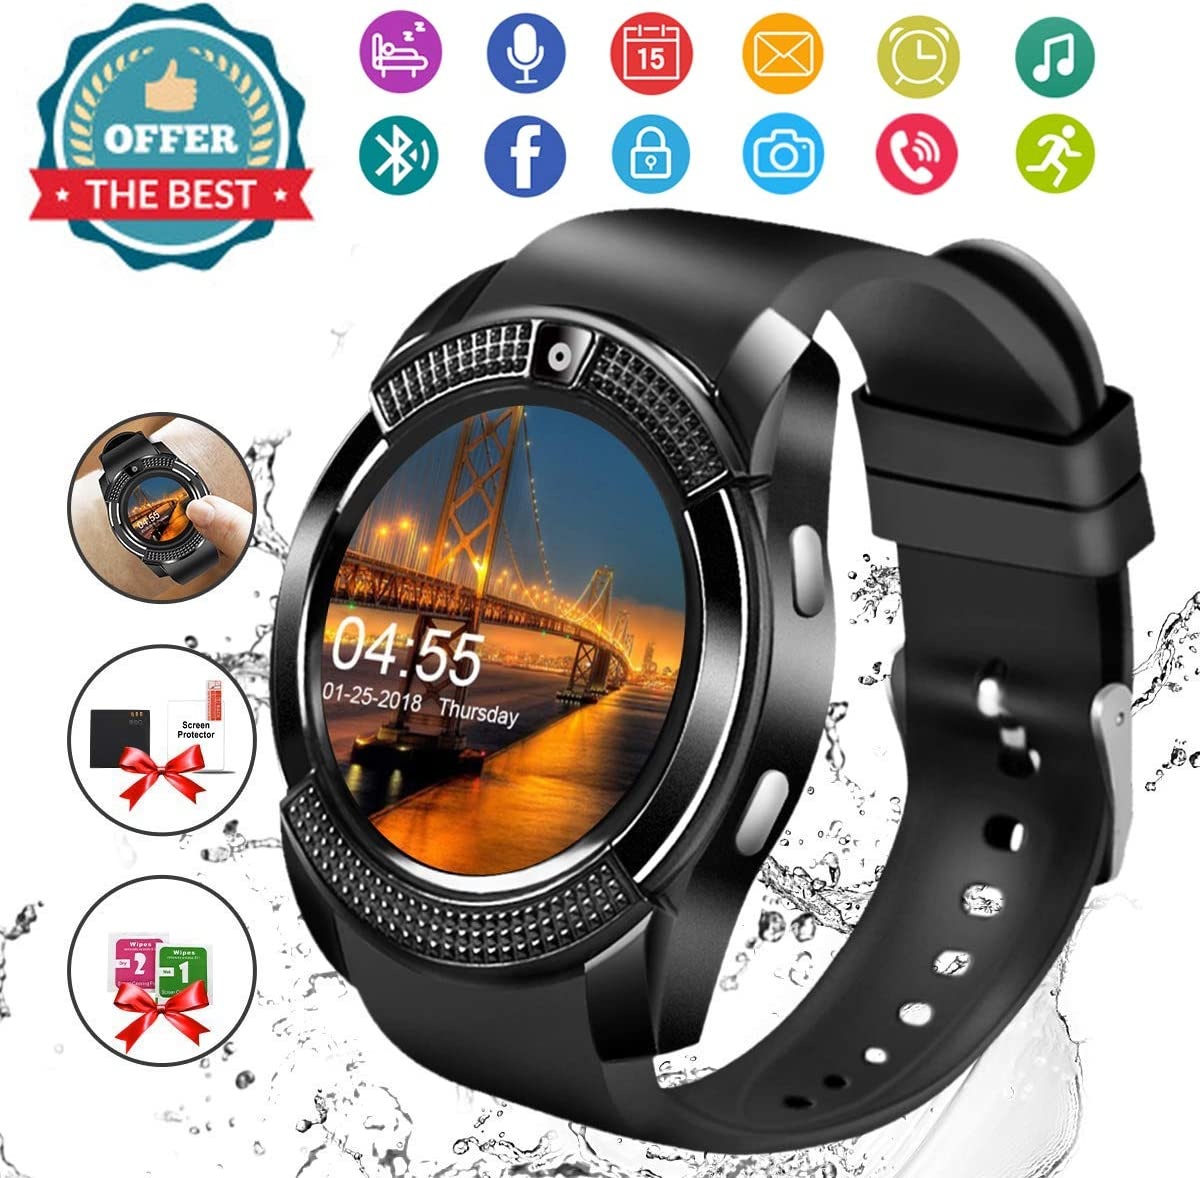 Smart Watch,Android Smartwatch Touch Screen Bluetooth Smart Watch for Android Phones Wrist Phone Watch with SIM Card Slot & Camera,Waterproof…